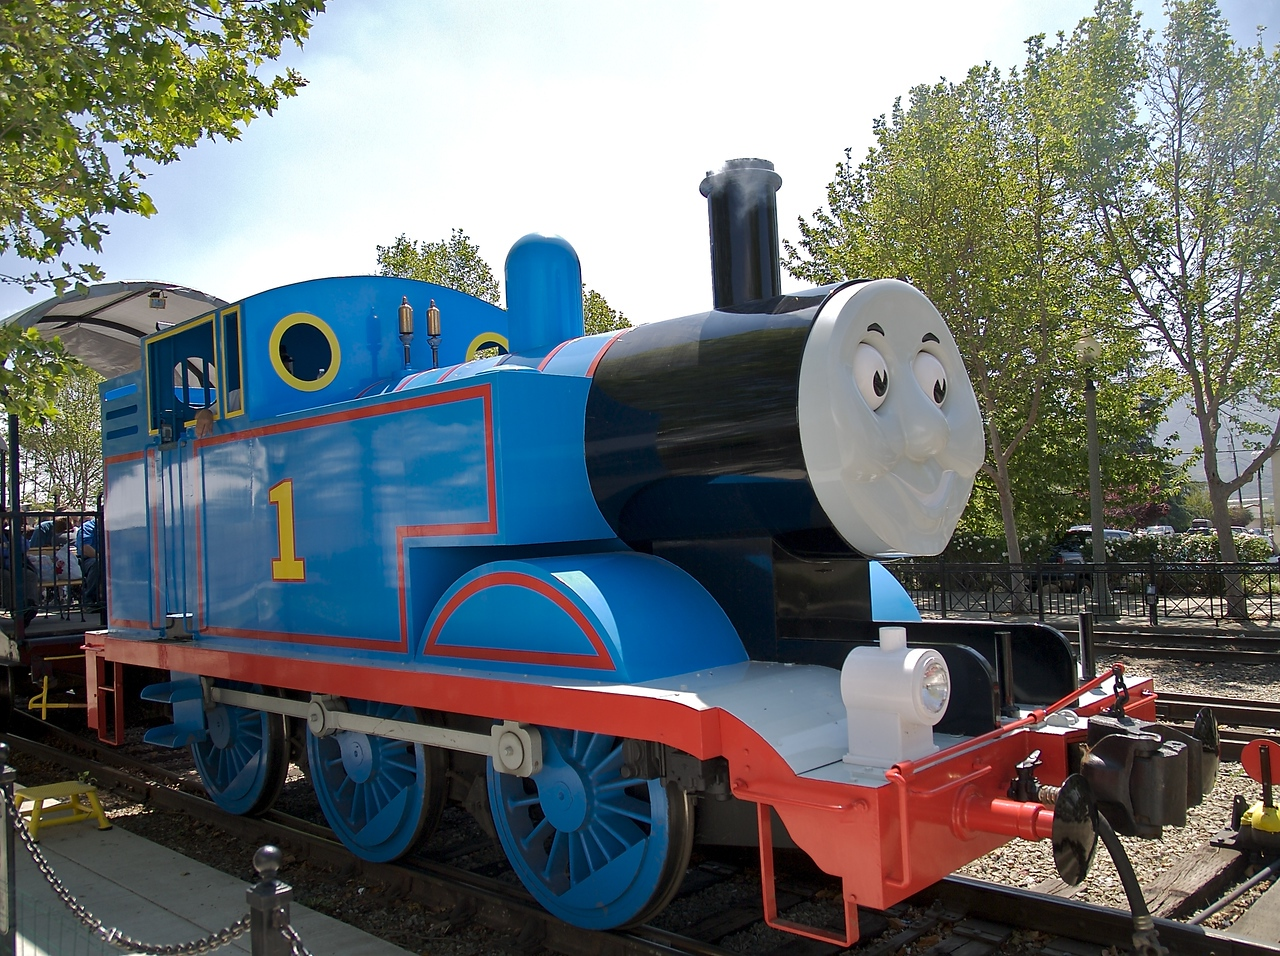 Here is a close up of Thomas.